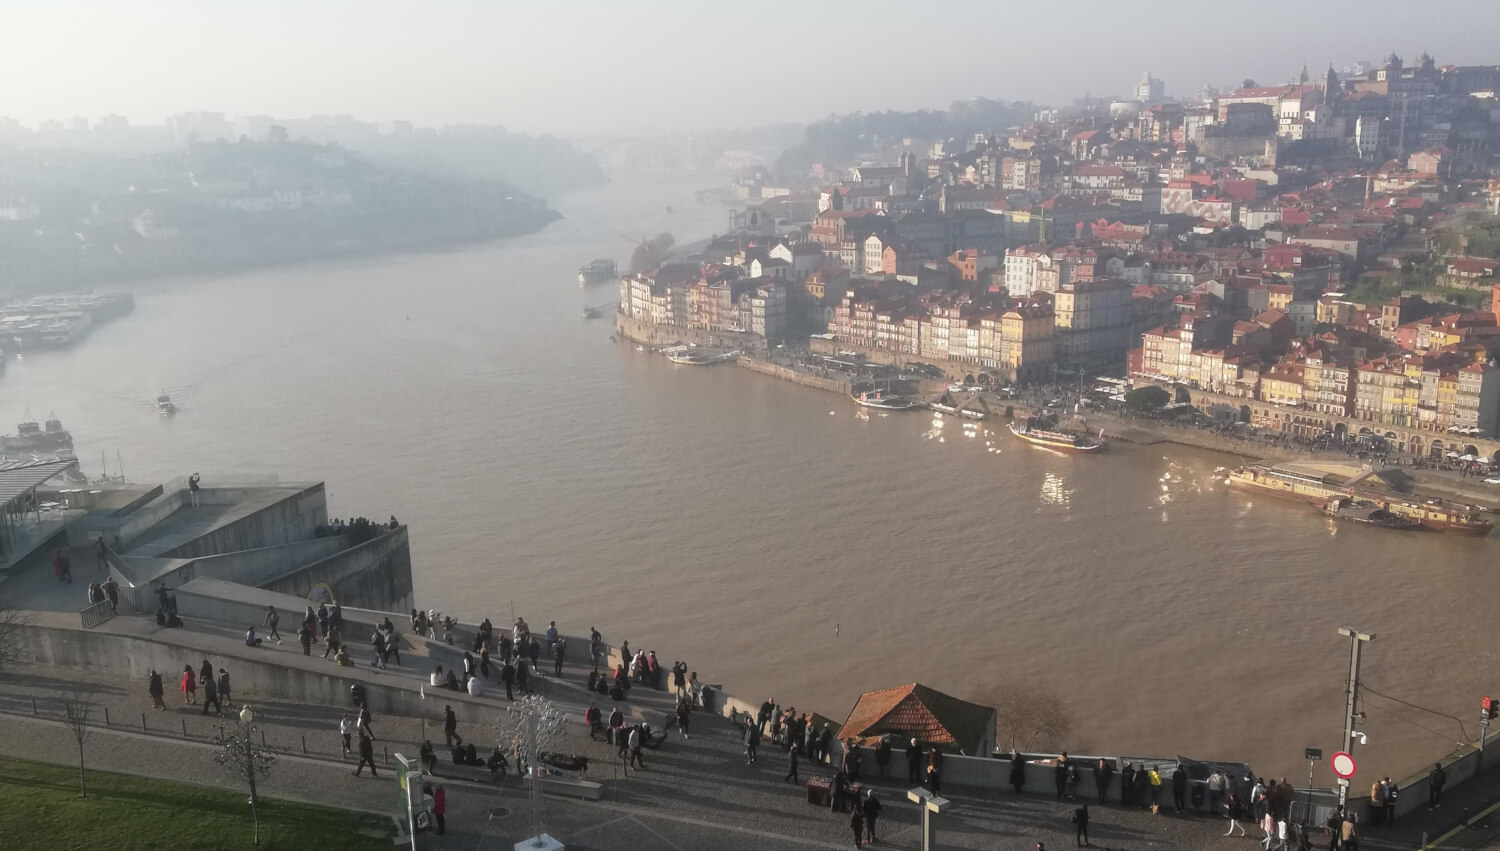 Beautiful Porto seen from the monastery across the river